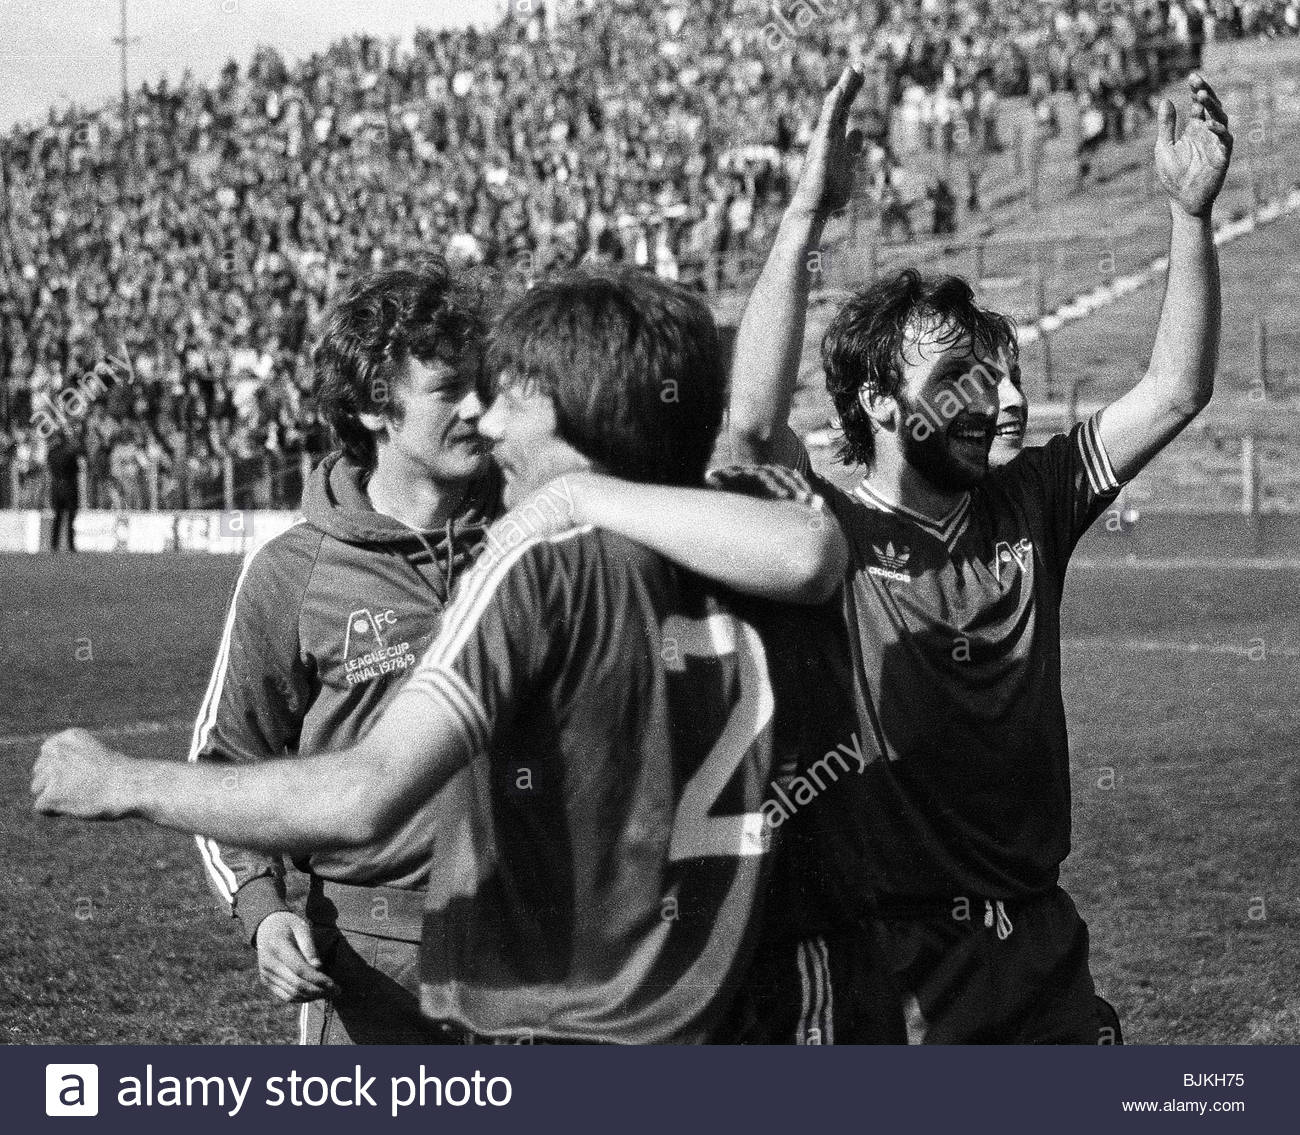 03/05/80 SCOTTISH LEAGUE DIVISION ONE HIBS V ABERDEEN (0-5) EASTER ROAD - EDINBURGH Aberdeen players celebrate as - Stock Image